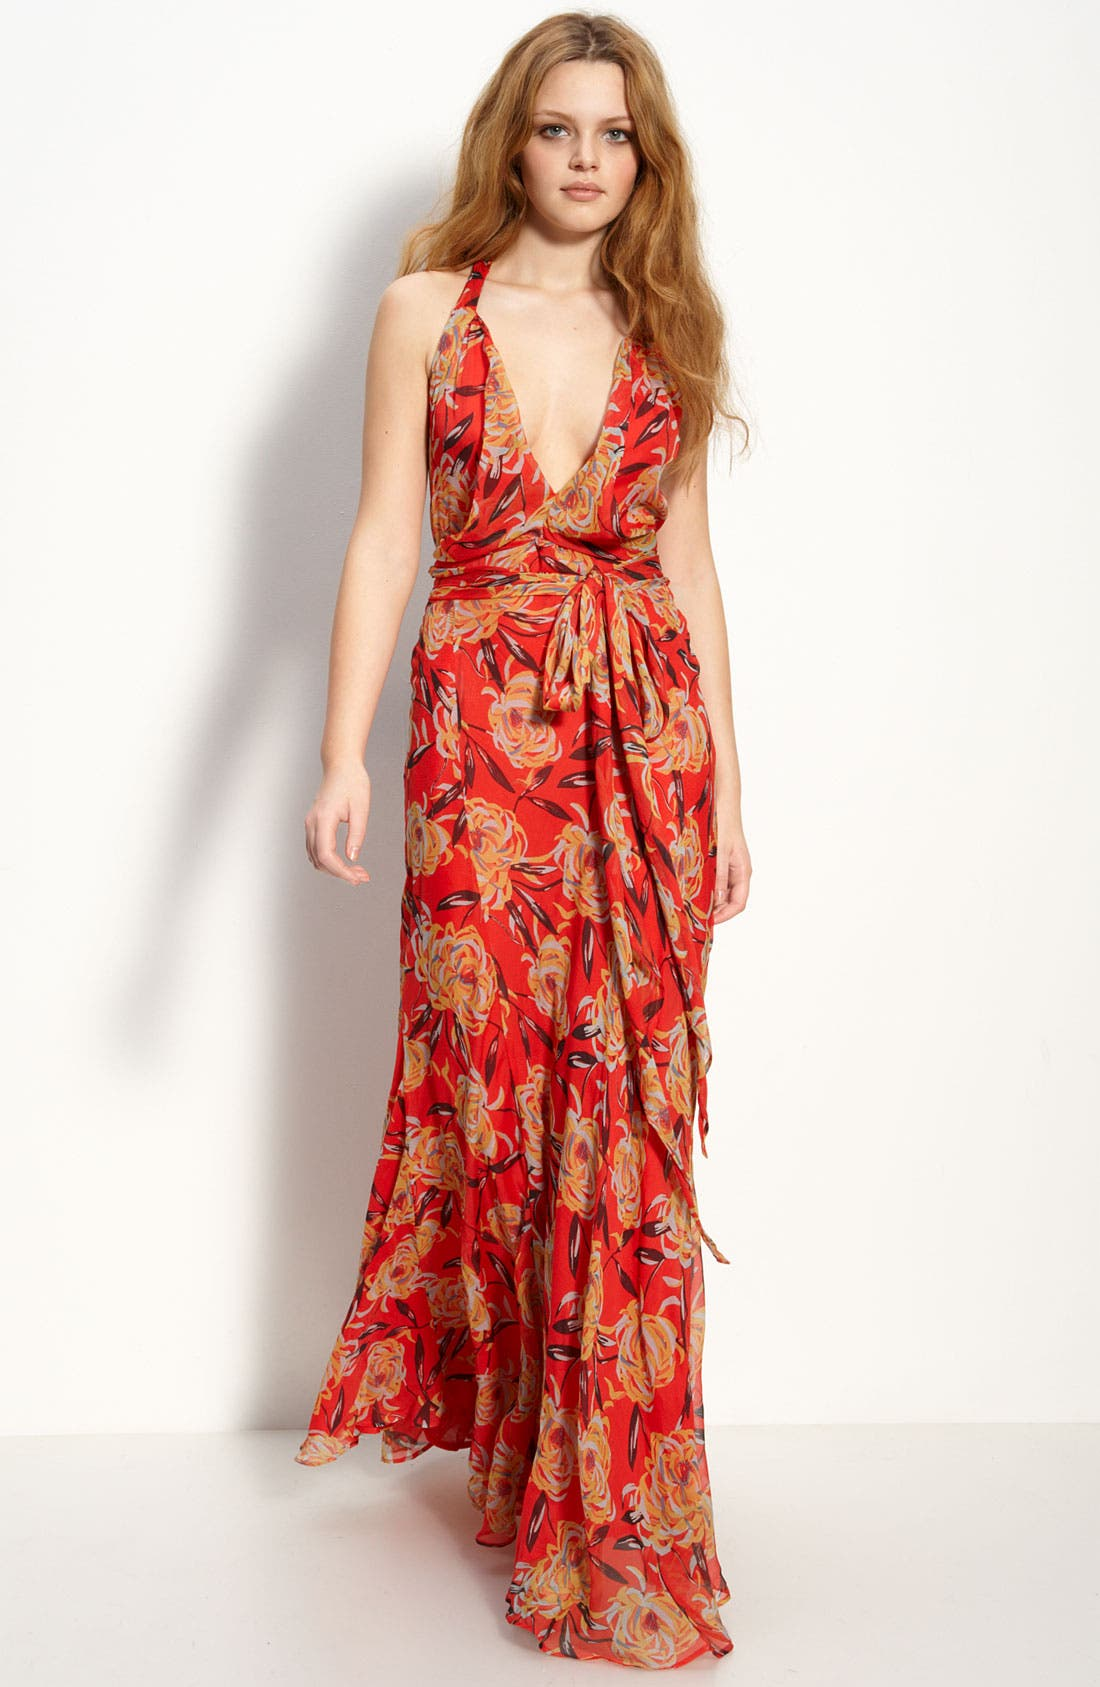 Alternate Image 1 Selected - Winter Kate 'Harlequin' Chiffon Maxi Dress